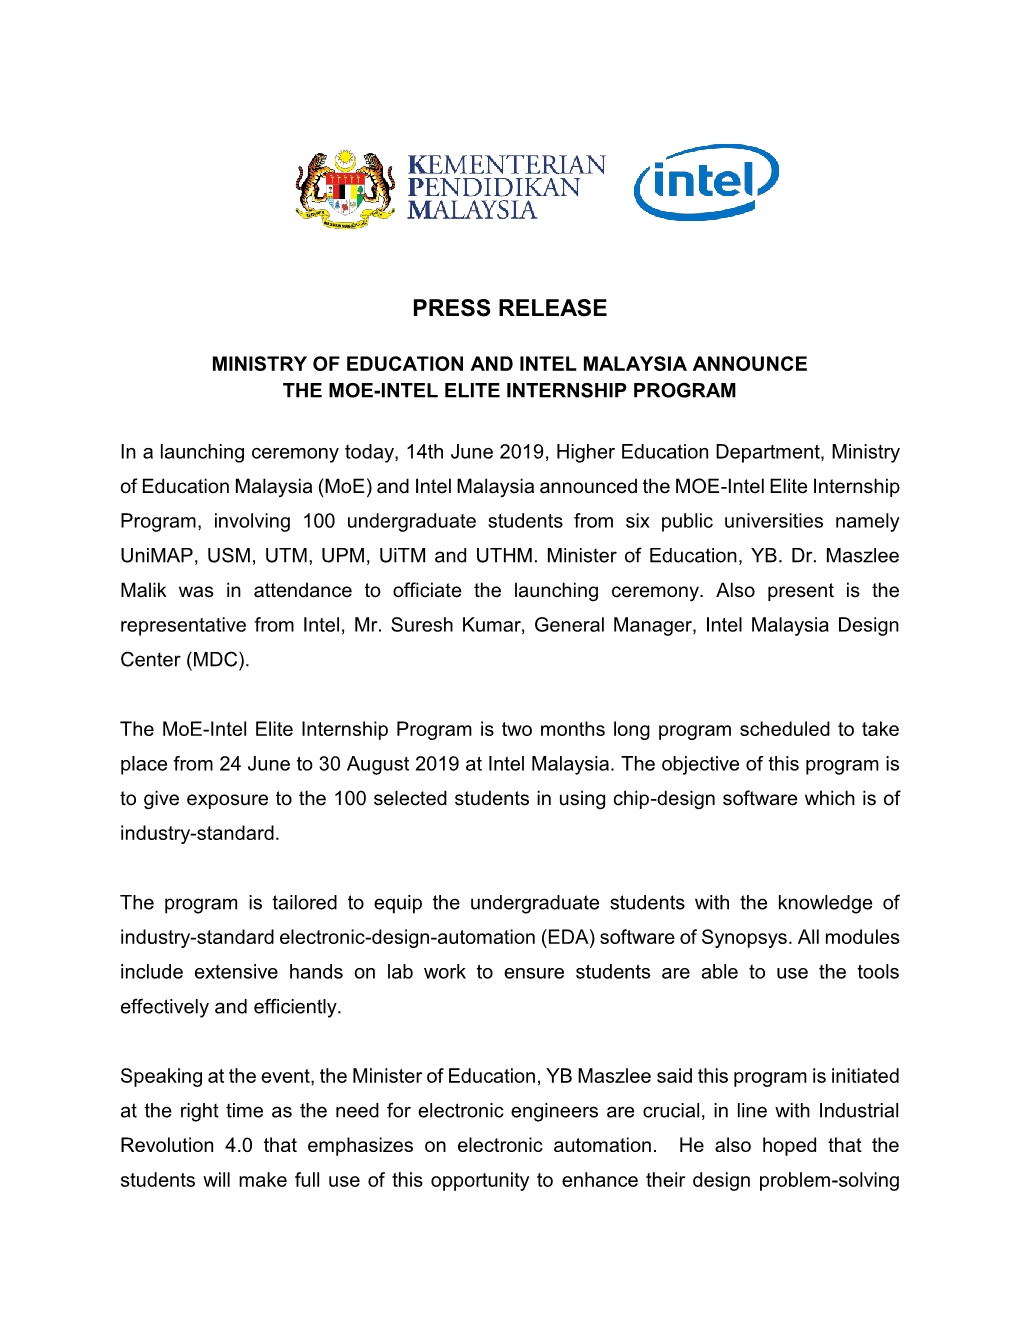 Press Release MOE INTEL LATEST 14 JUNE 20191